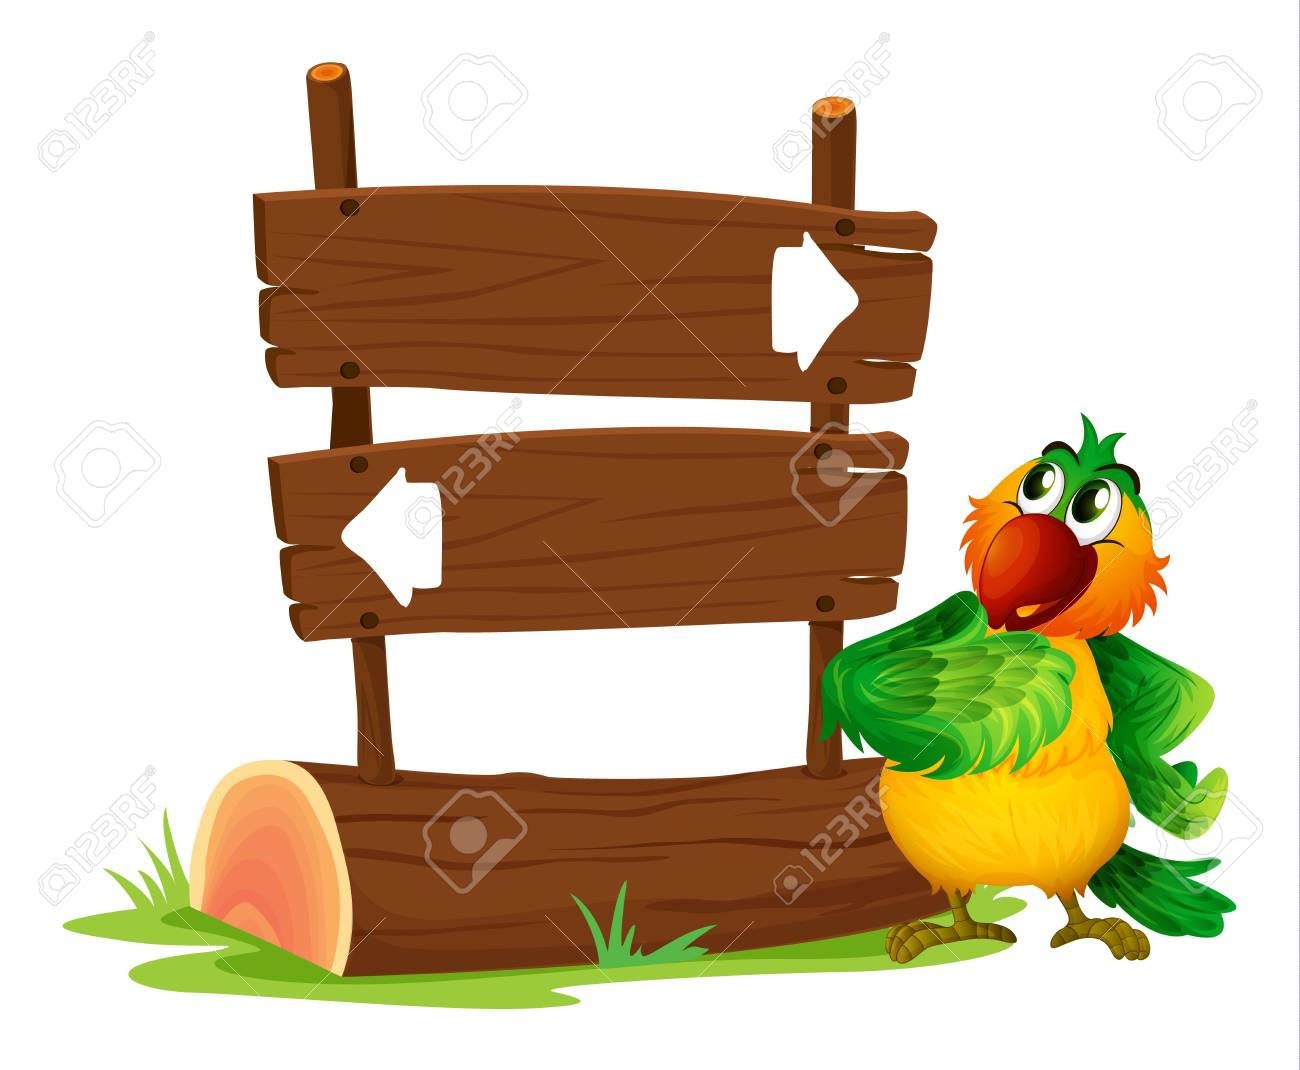 Illustration of a sign board and a bird on a white background Stock Vector - 17896452